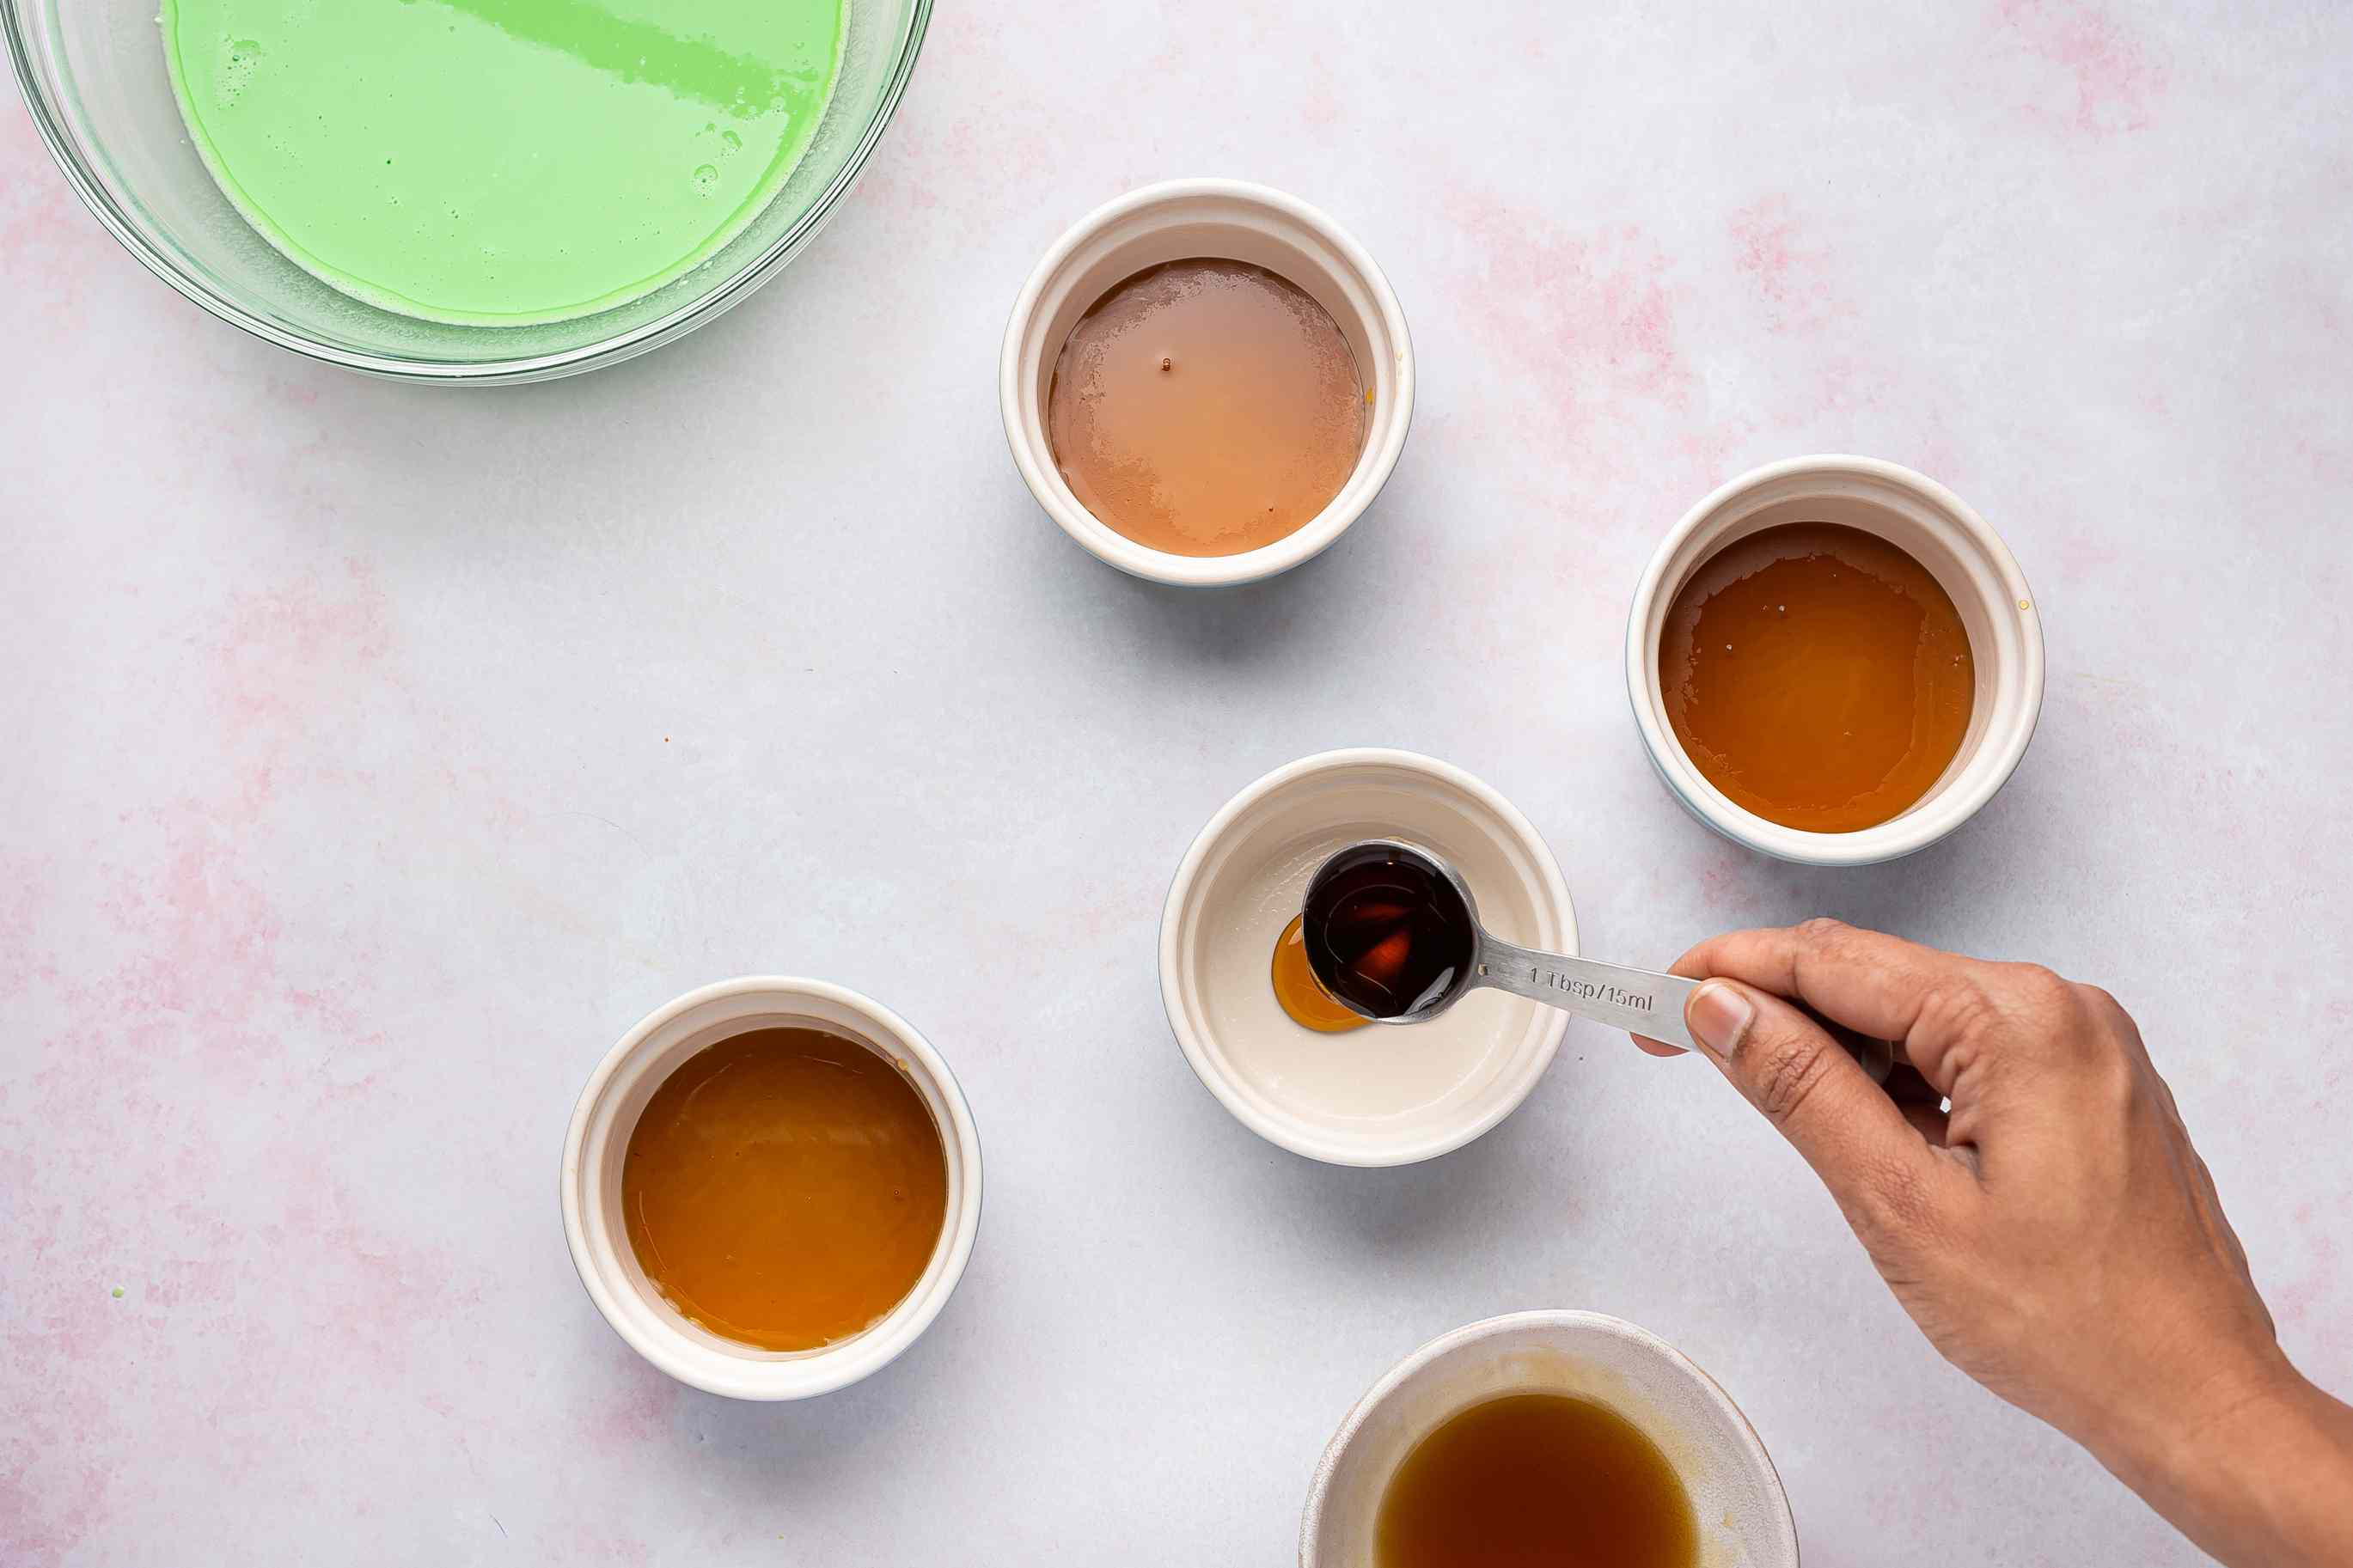 Pour a little syrup into the bottom of each ramekin